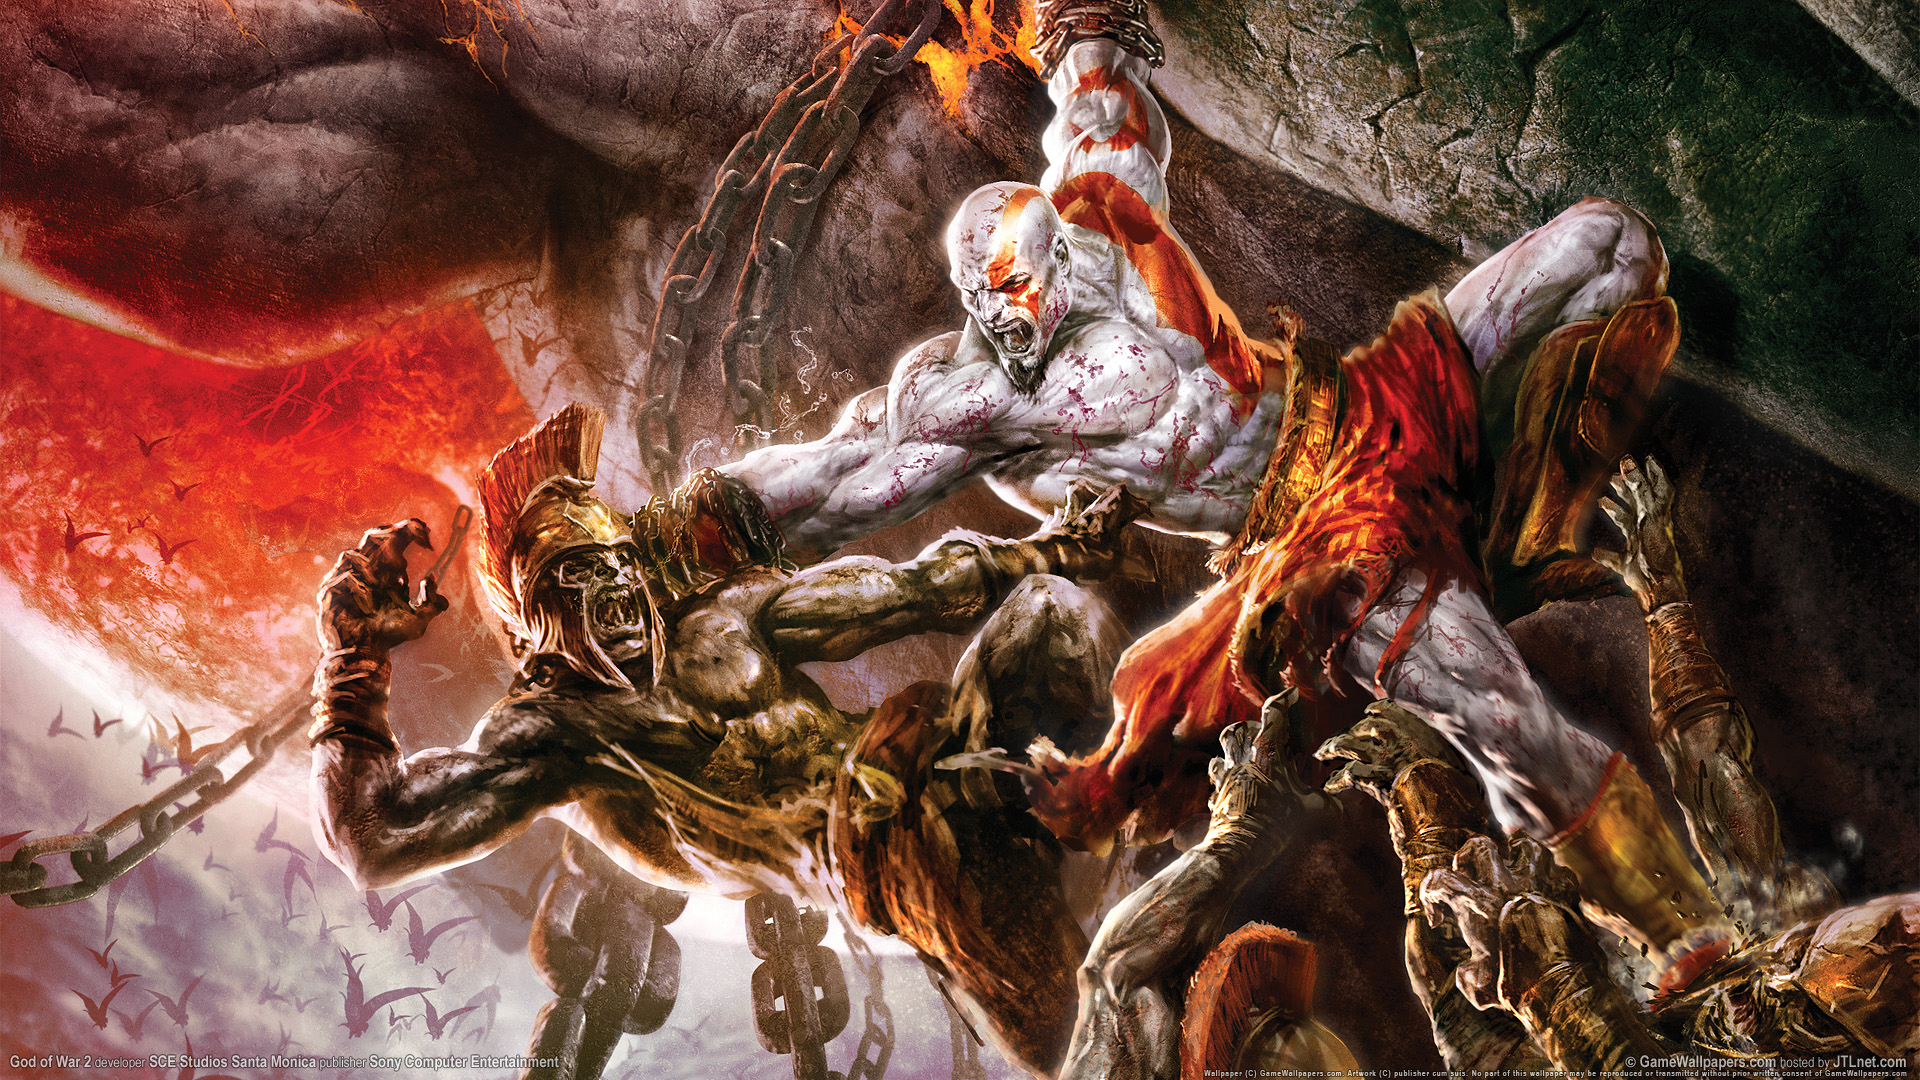 HD Wallpapers God of War 2 Game HDTV